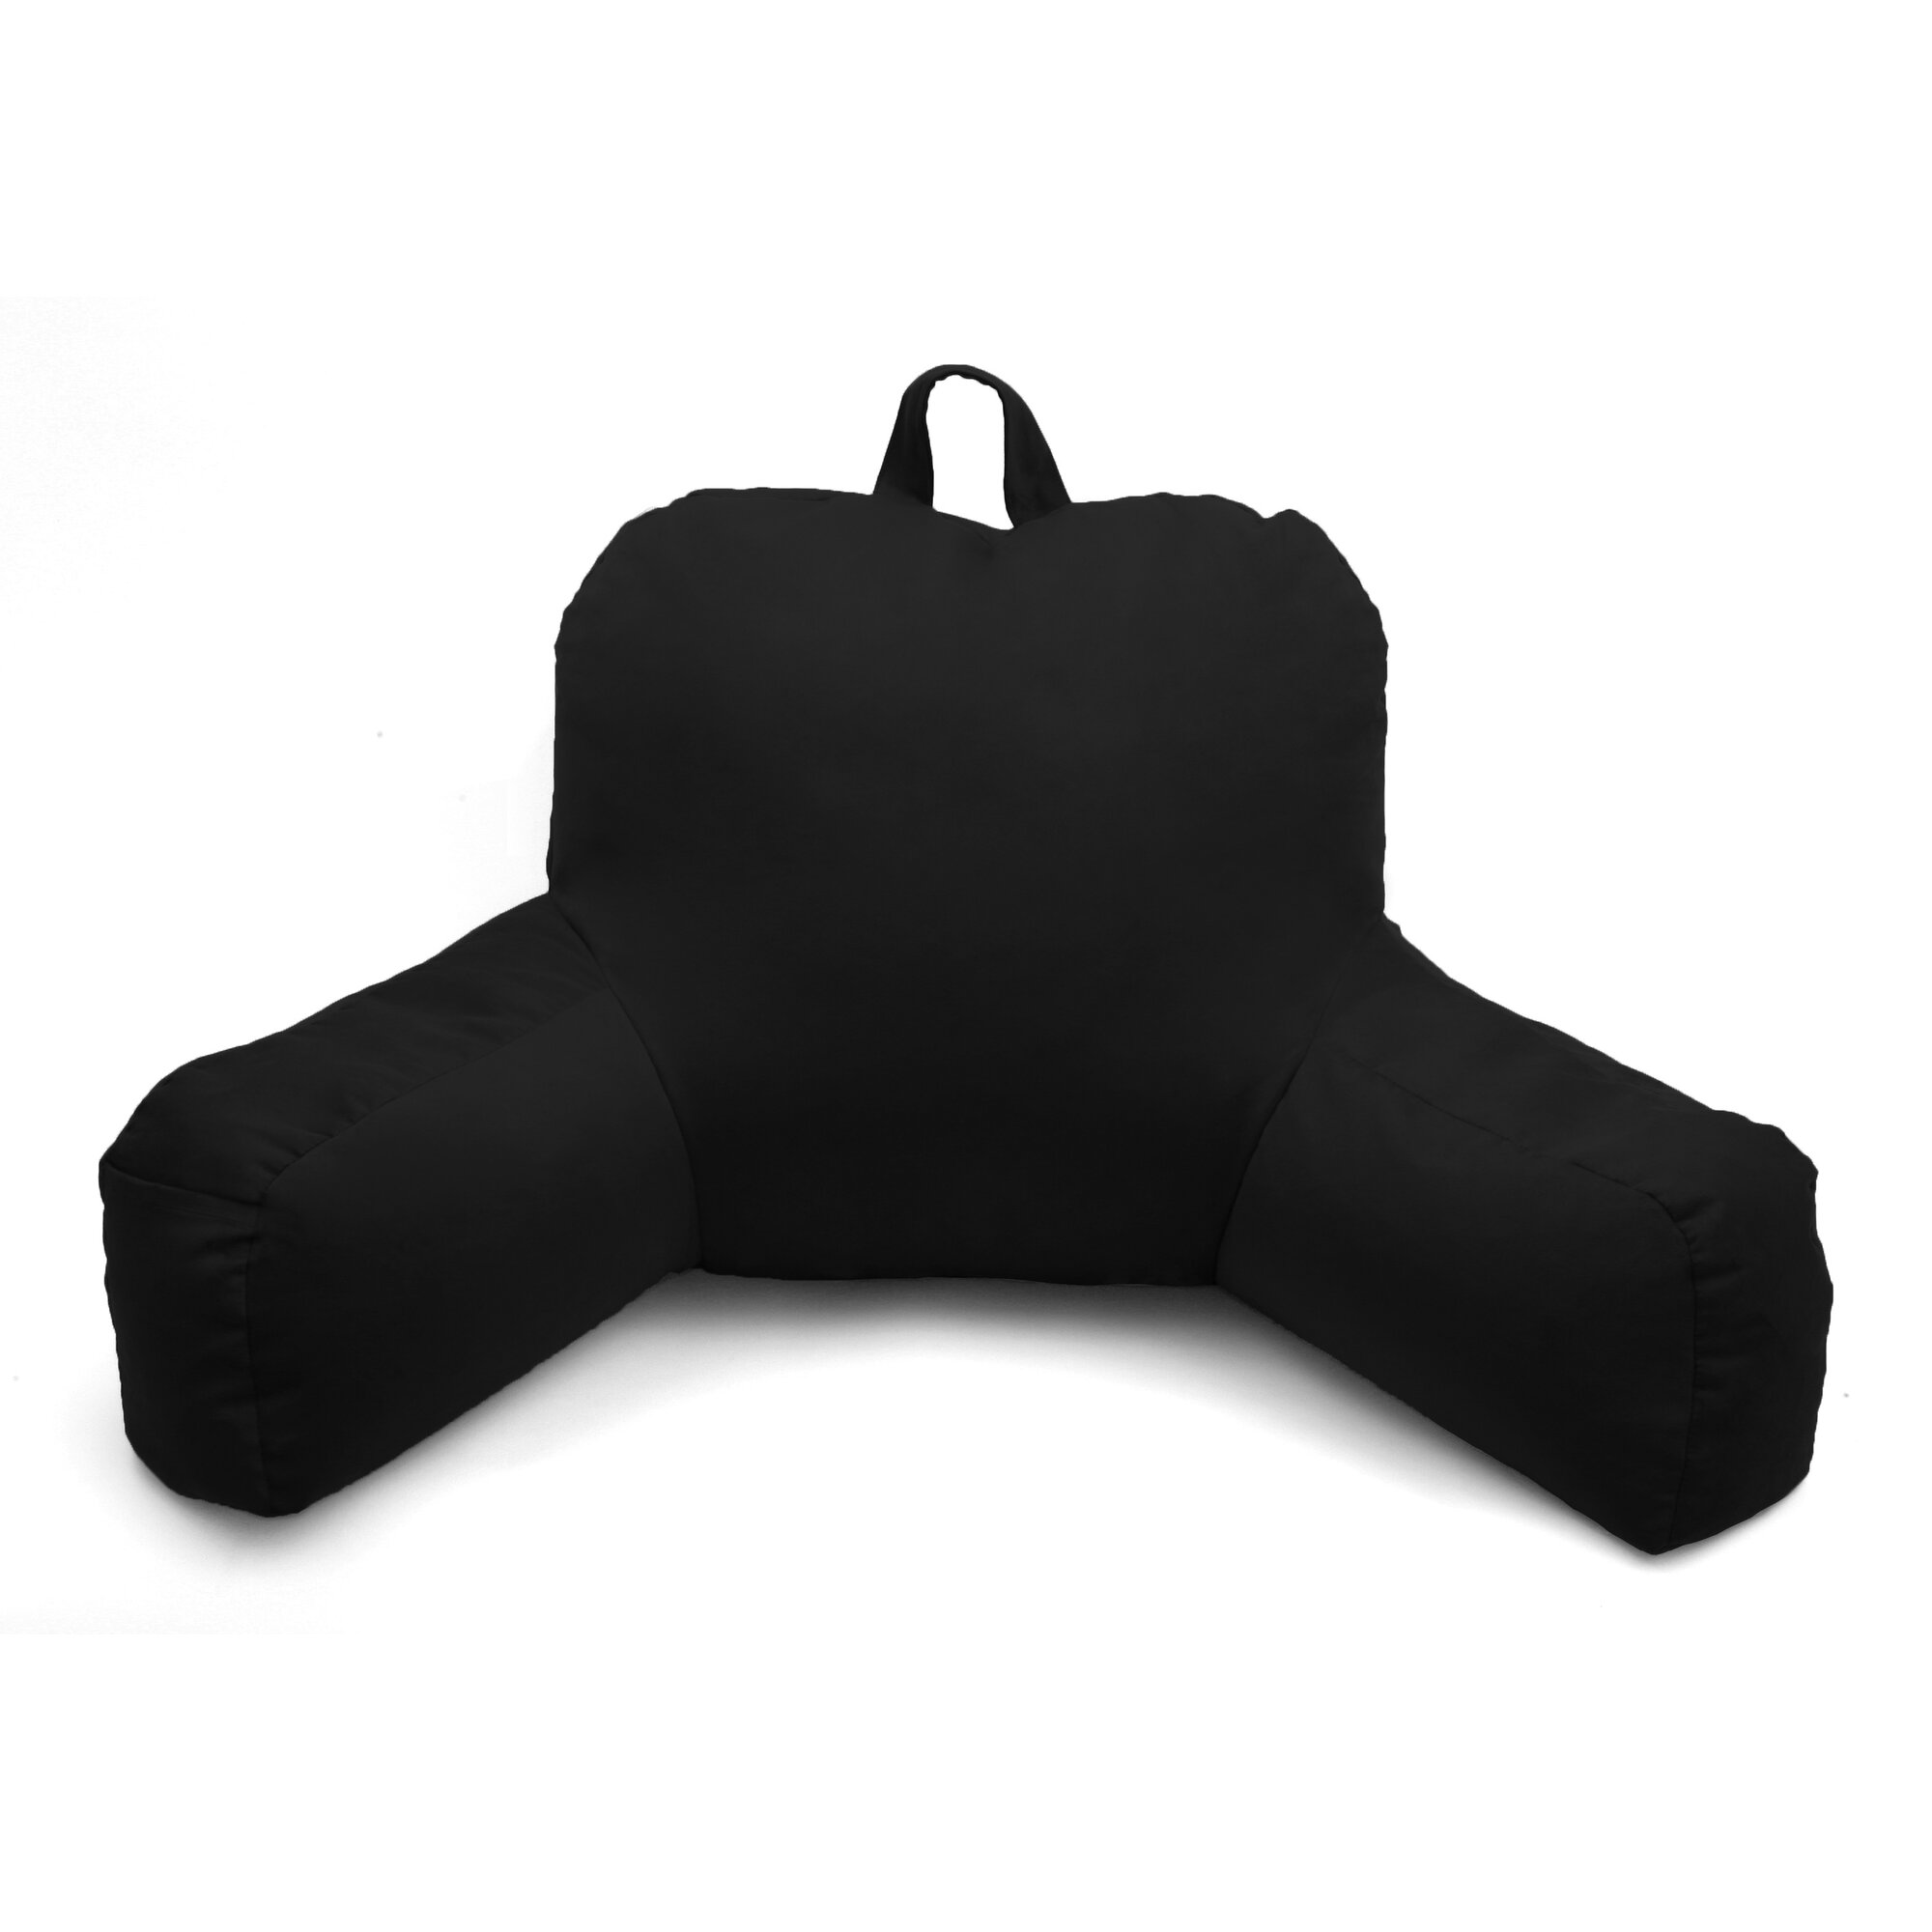 Bed rest pillow walmart - Bed Rest Pillow Black Porter Microsuede Bed Rest Pillow